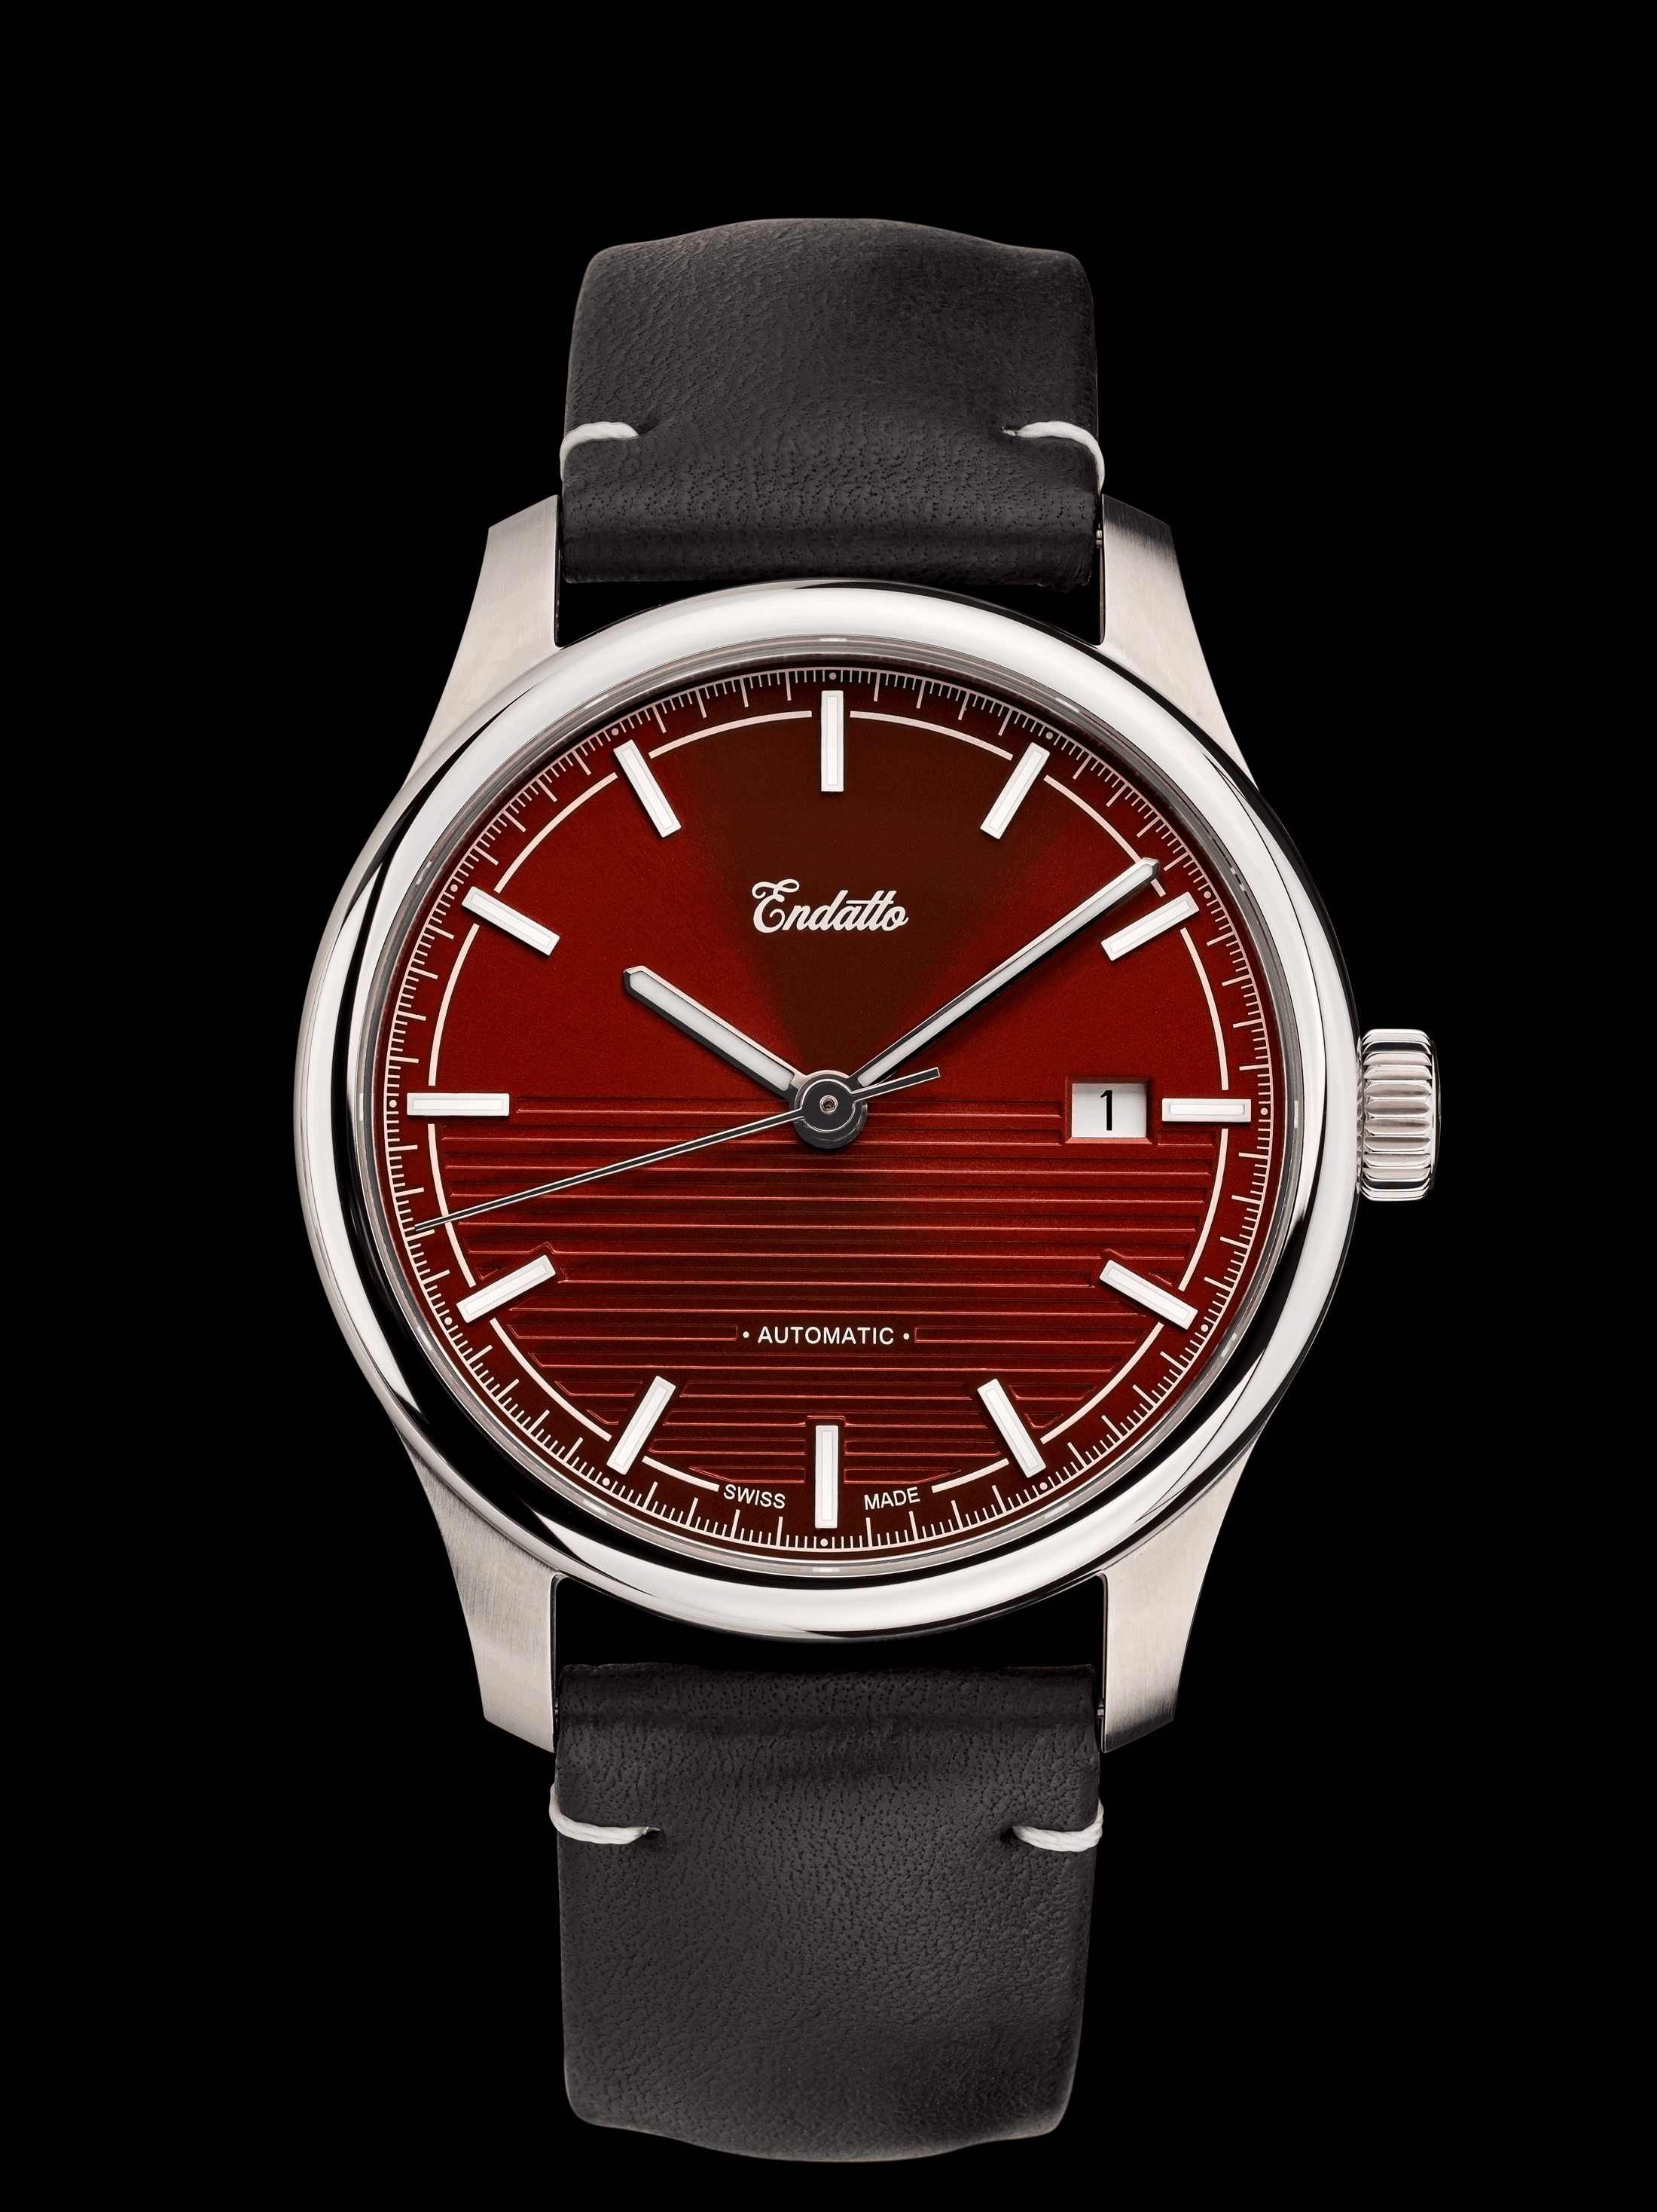 Endatto's Swiss-made watch featuring an Eta 2824-2 automatic movement and a red dial.